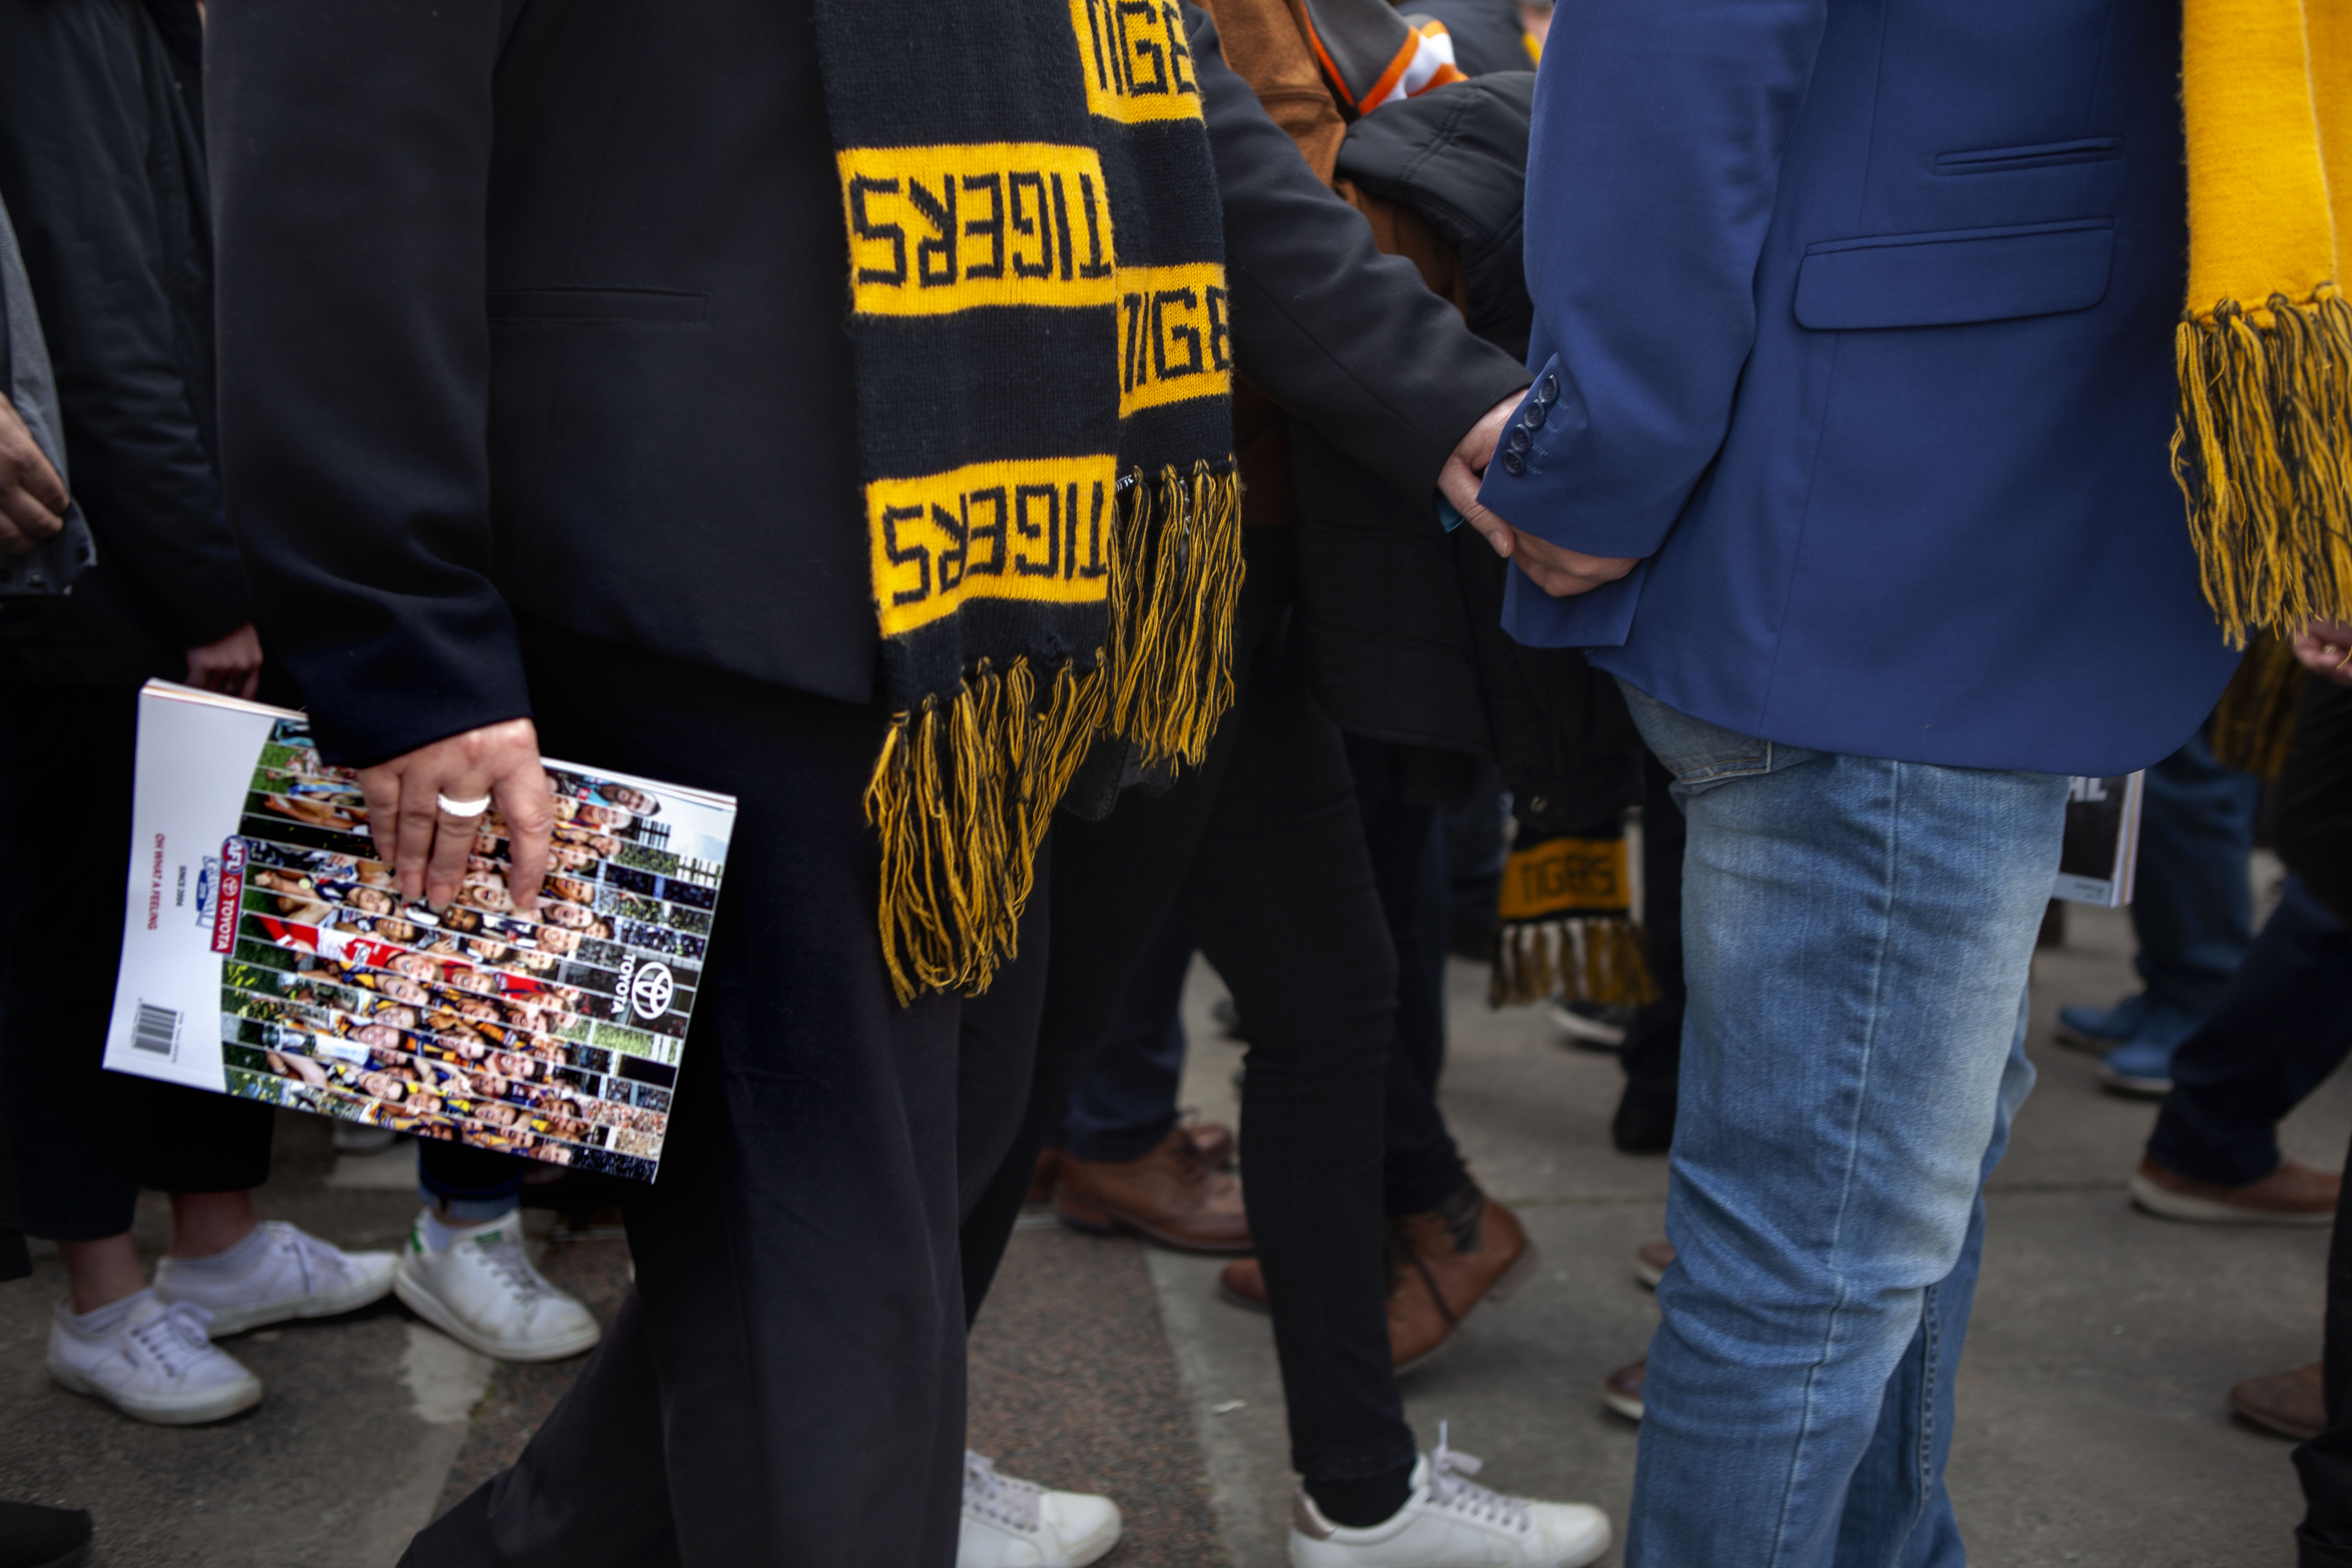 Most people entering the stadium are holding a copy of the famous Footy Record.